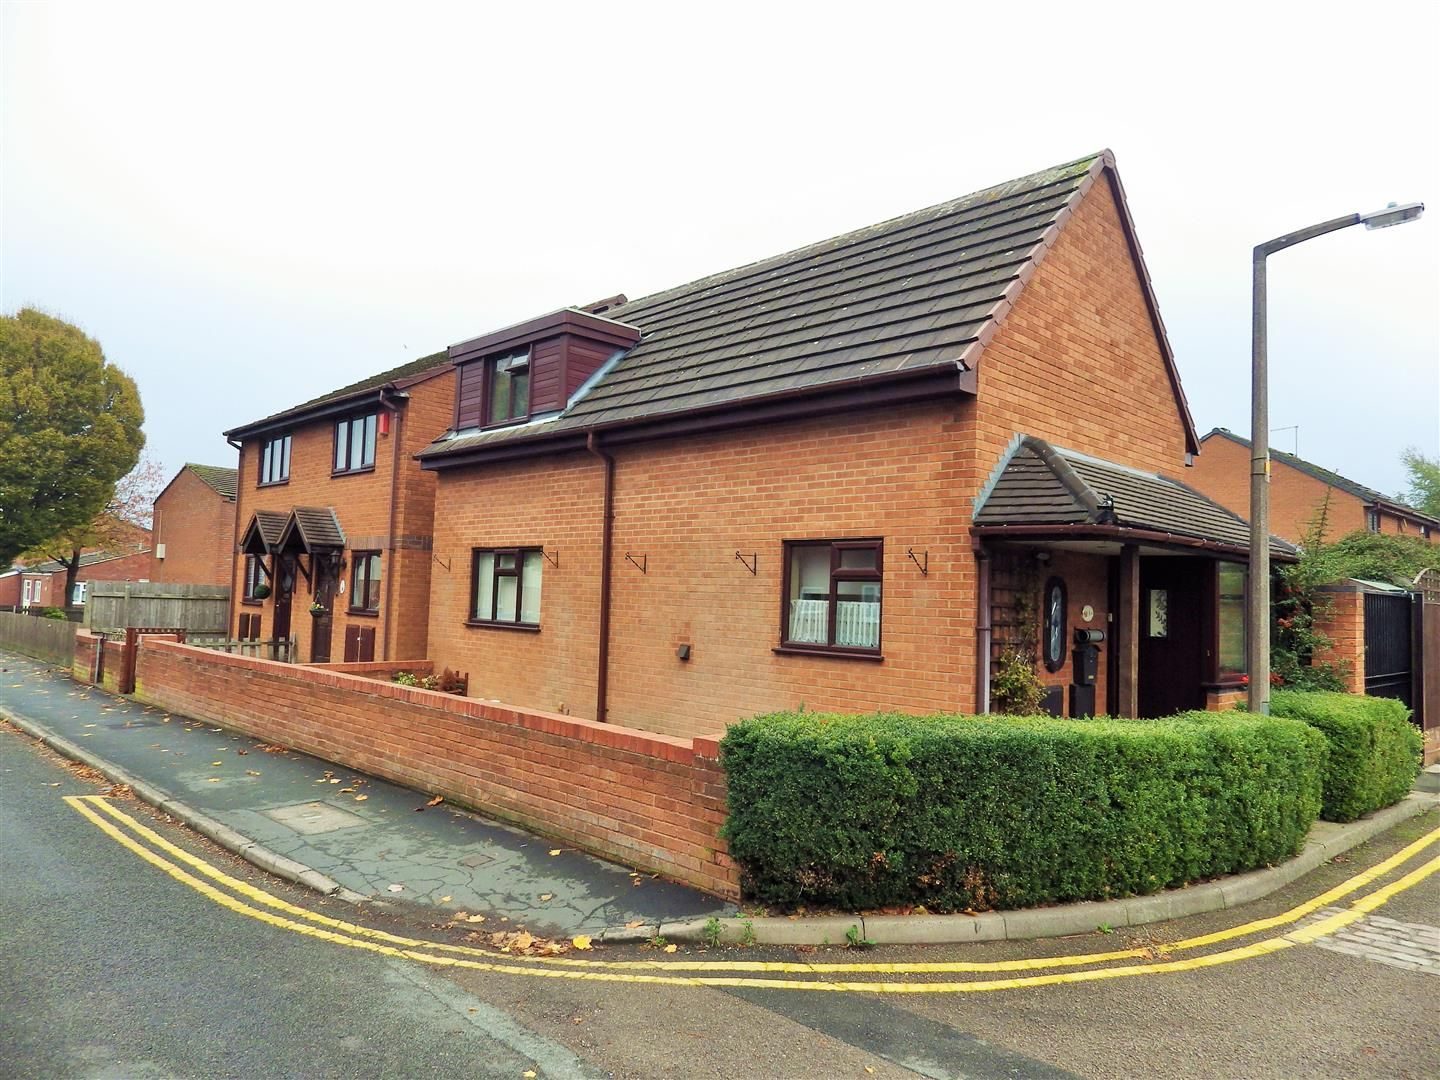 2 bed detached for sale, B65